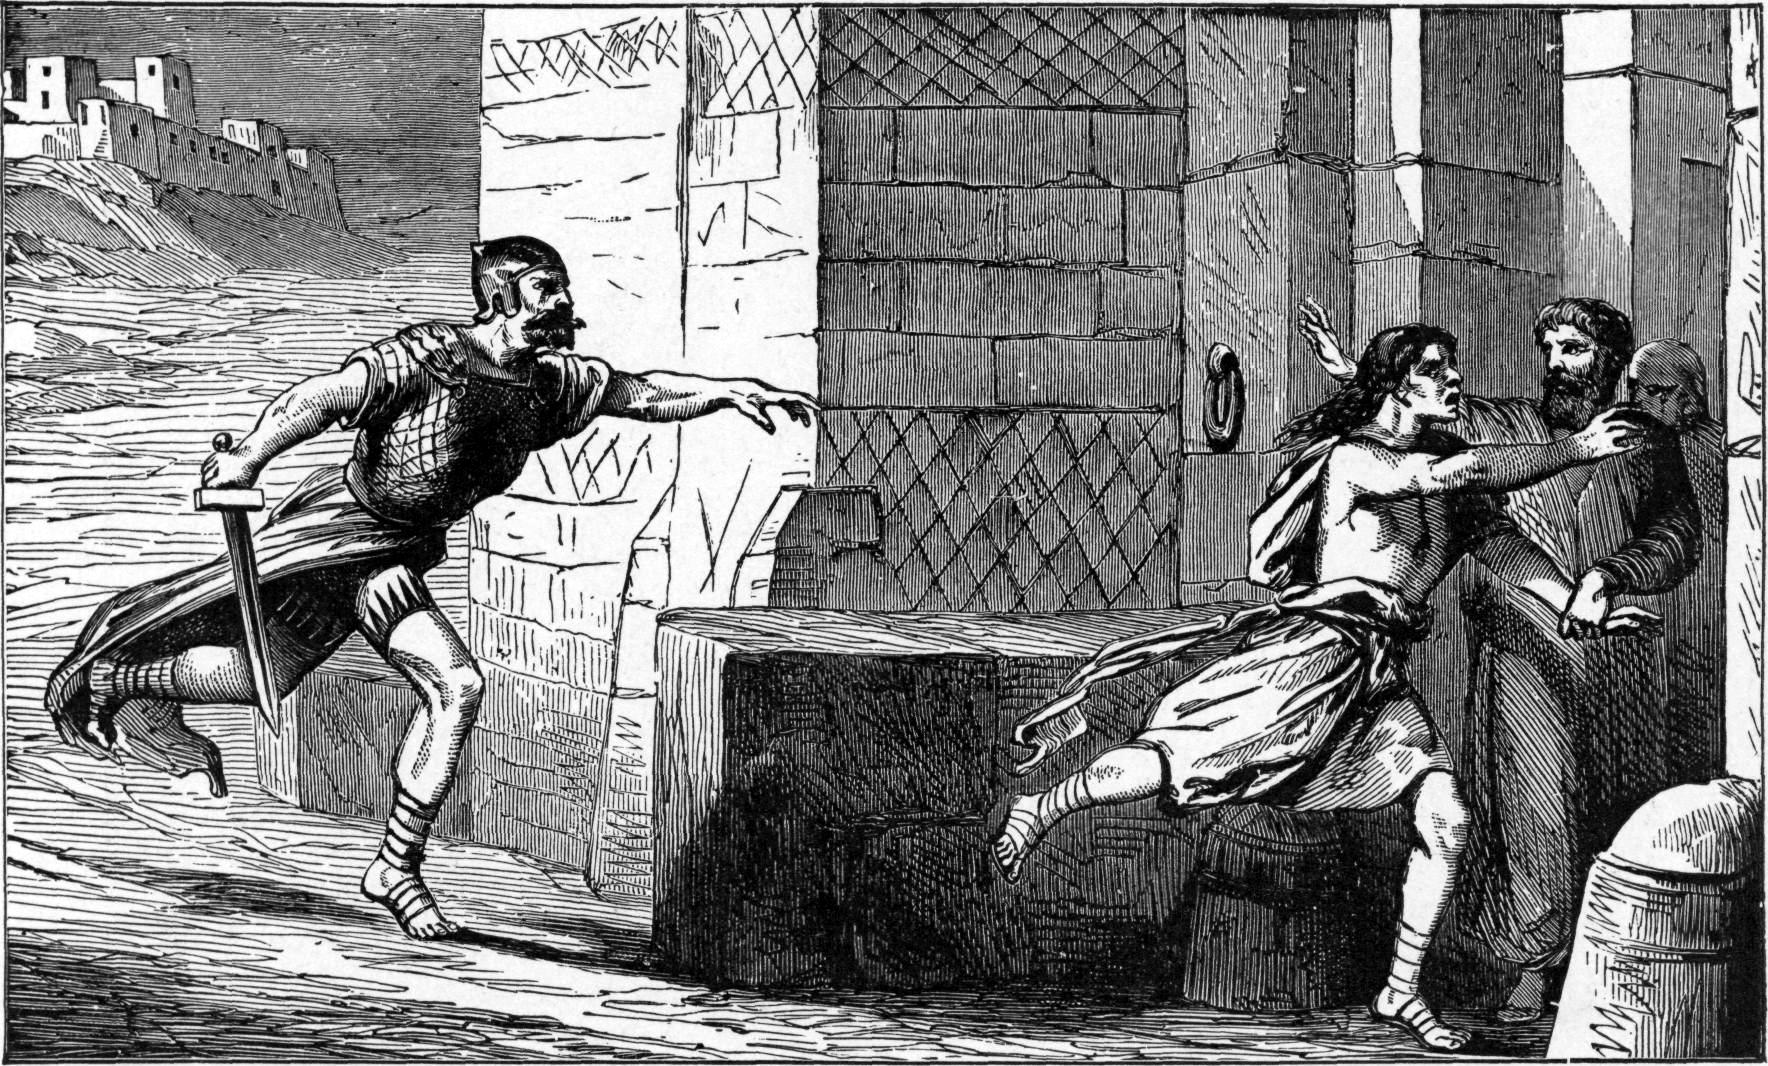 Charles Foster Drawing - Running to the City of Refuge (Wikimedia Commons)